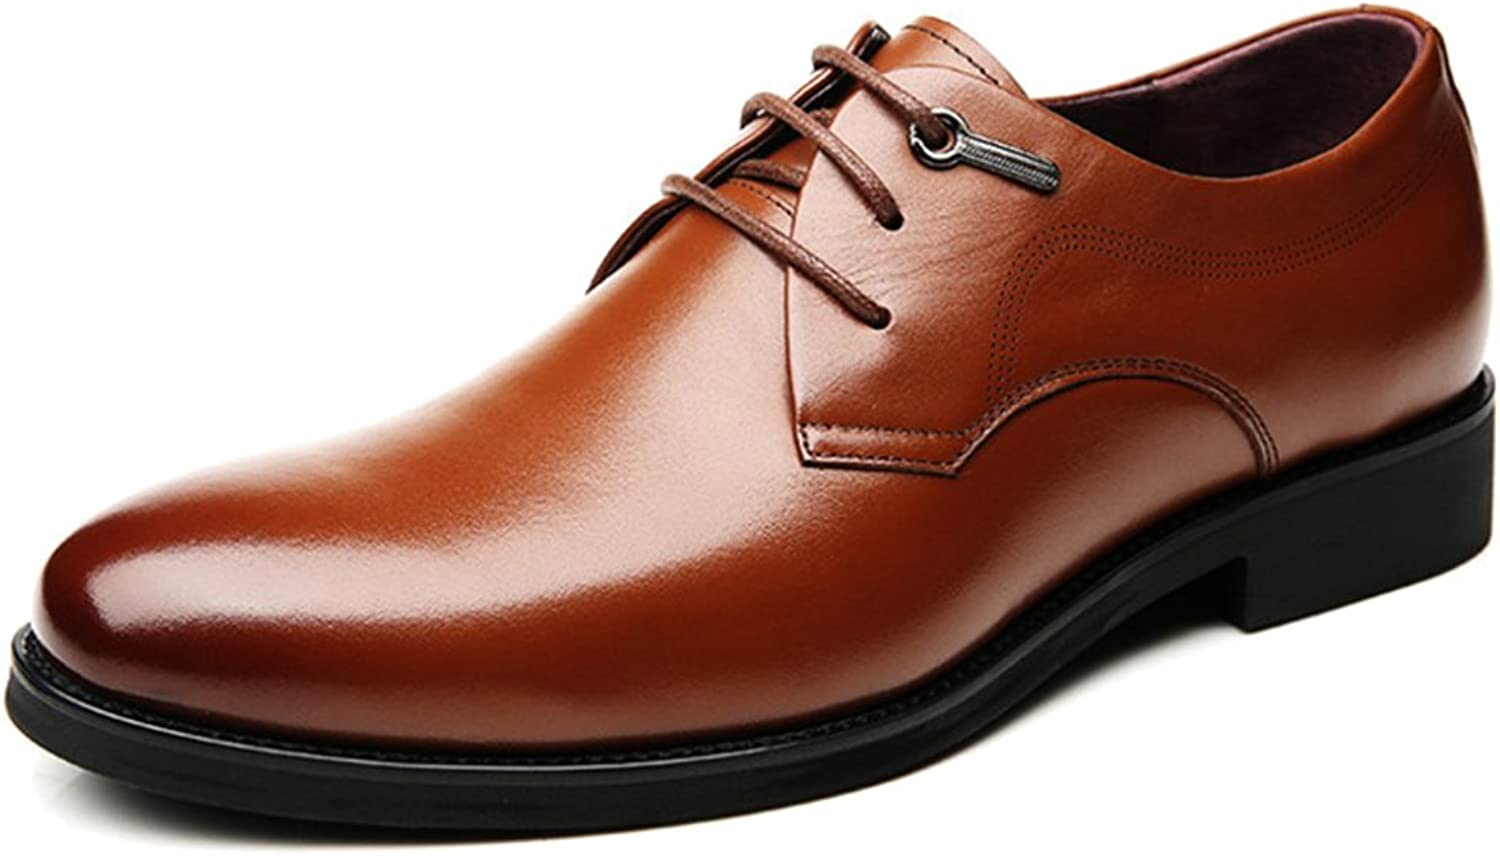 Men's Business Derby Real Leather shoes Formal Dress Lace Up Round-toe shoes For Gentleman Male Work Party Wedding